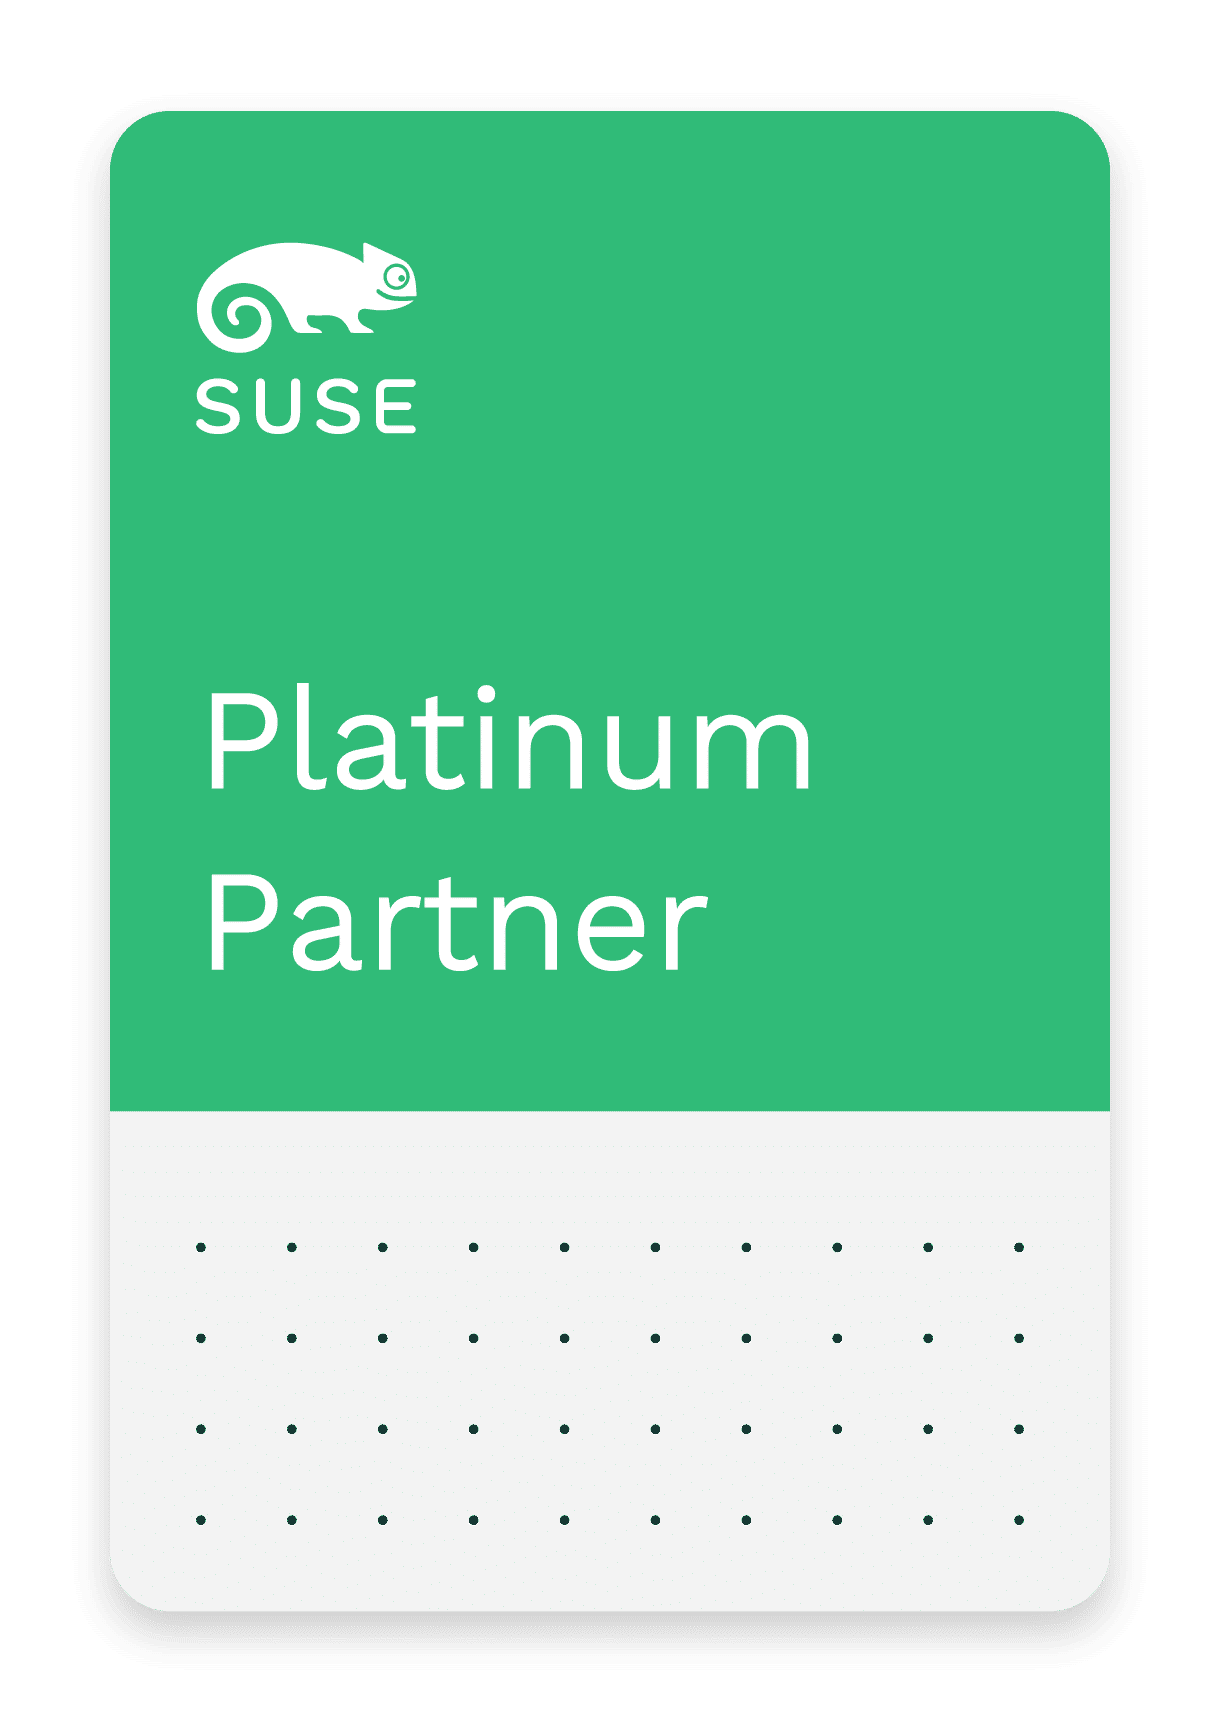 SUSE Platinum Partner